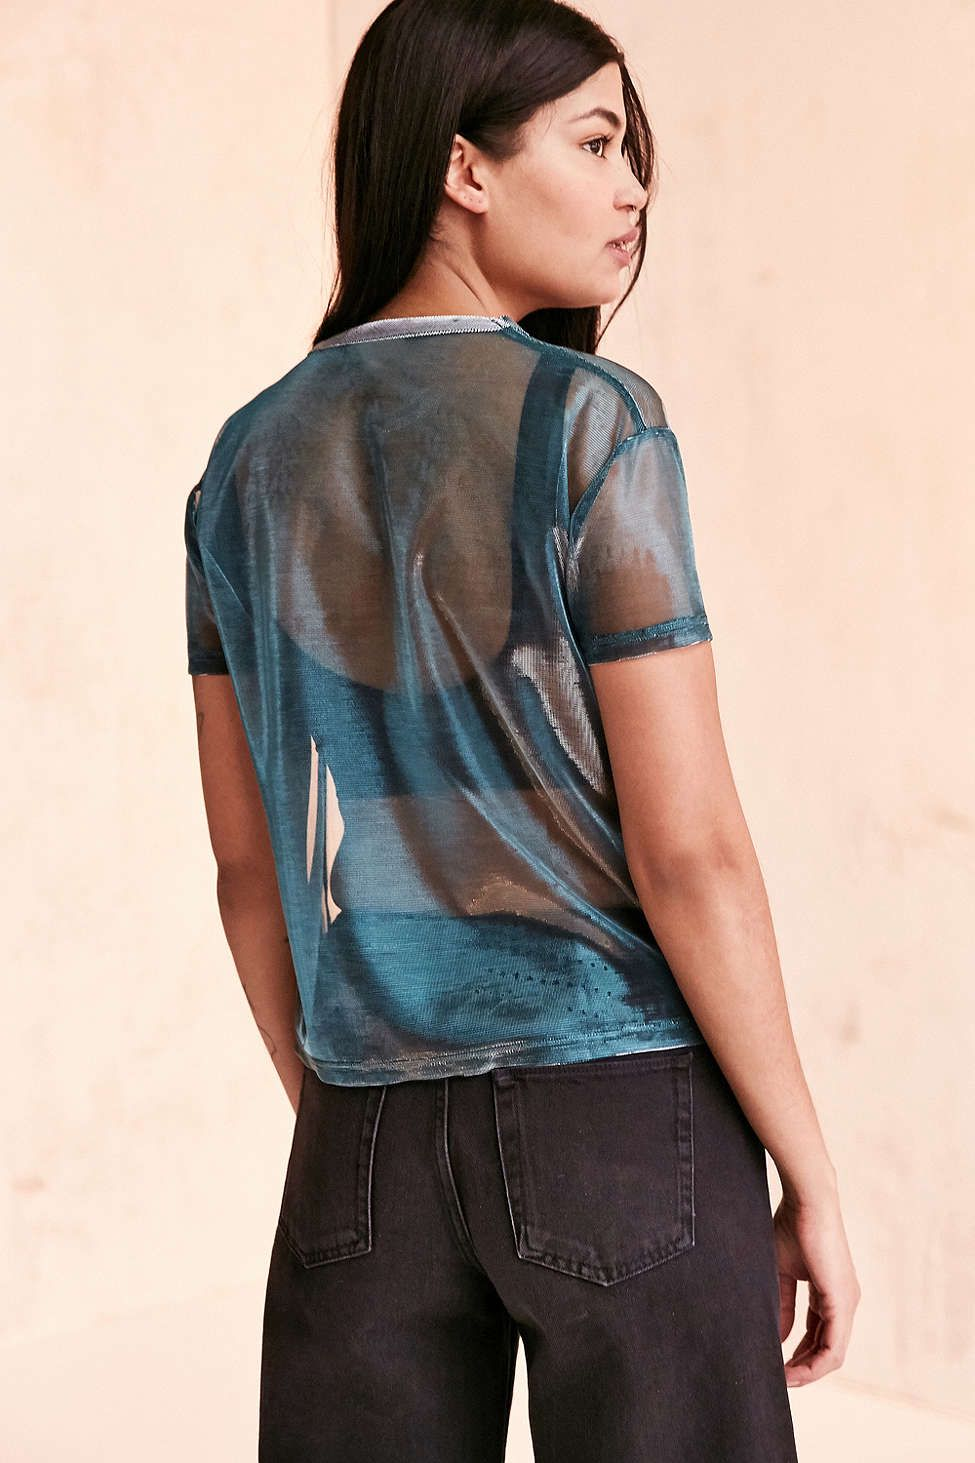 1840c1243eb79 Silence + Noise Iridescent Shimmer Mesh Tee - Urban Outfitters